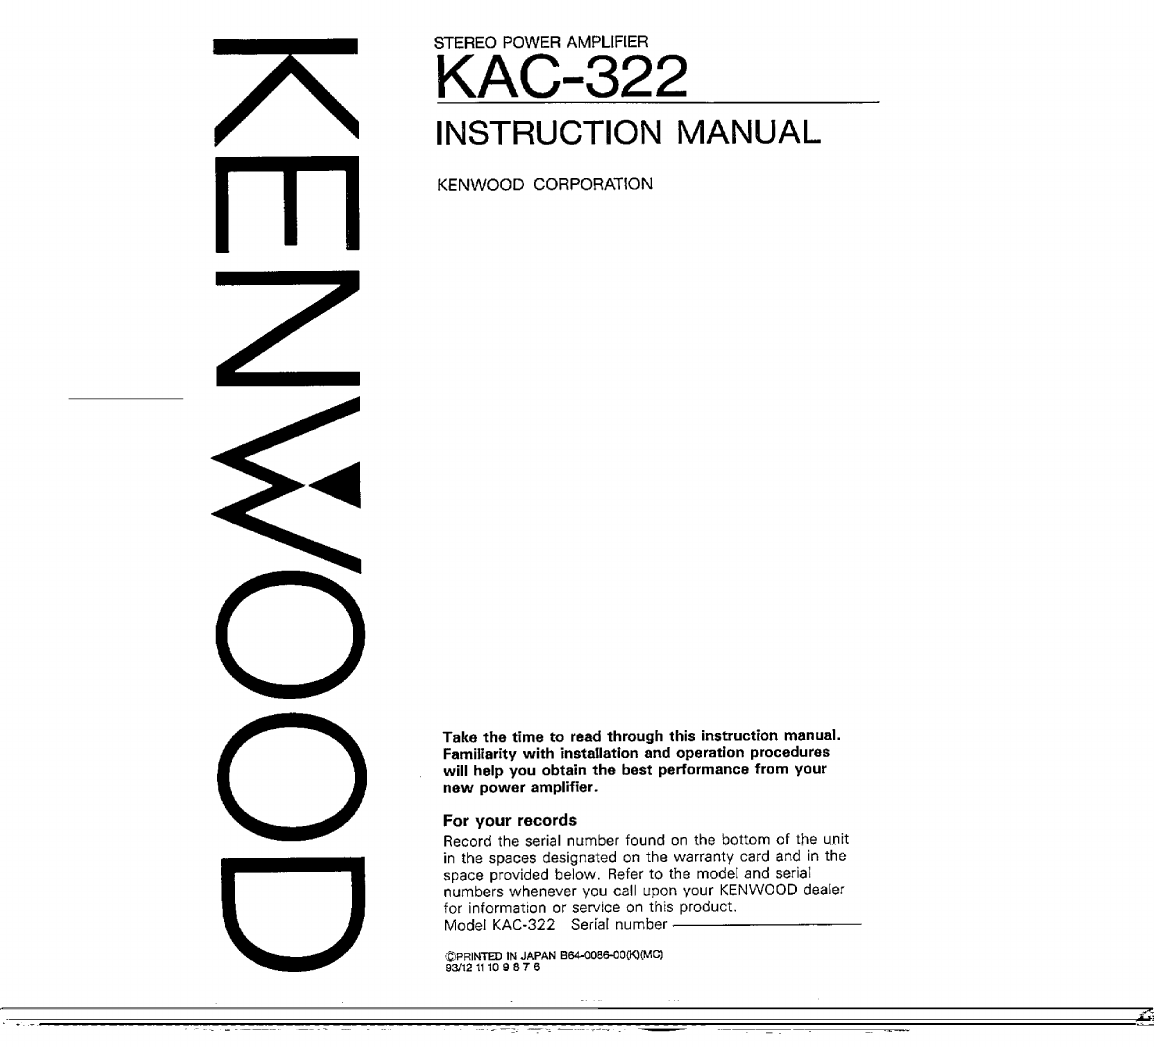 Kenwood Kdc 322 Wiring Diagram 30 Images 122 138 83b11ac8 8eb9 5224 7112 D93ad8dc1fe2 Bg1 Stereo Amplifier Kac User Guide Manualsonline Com